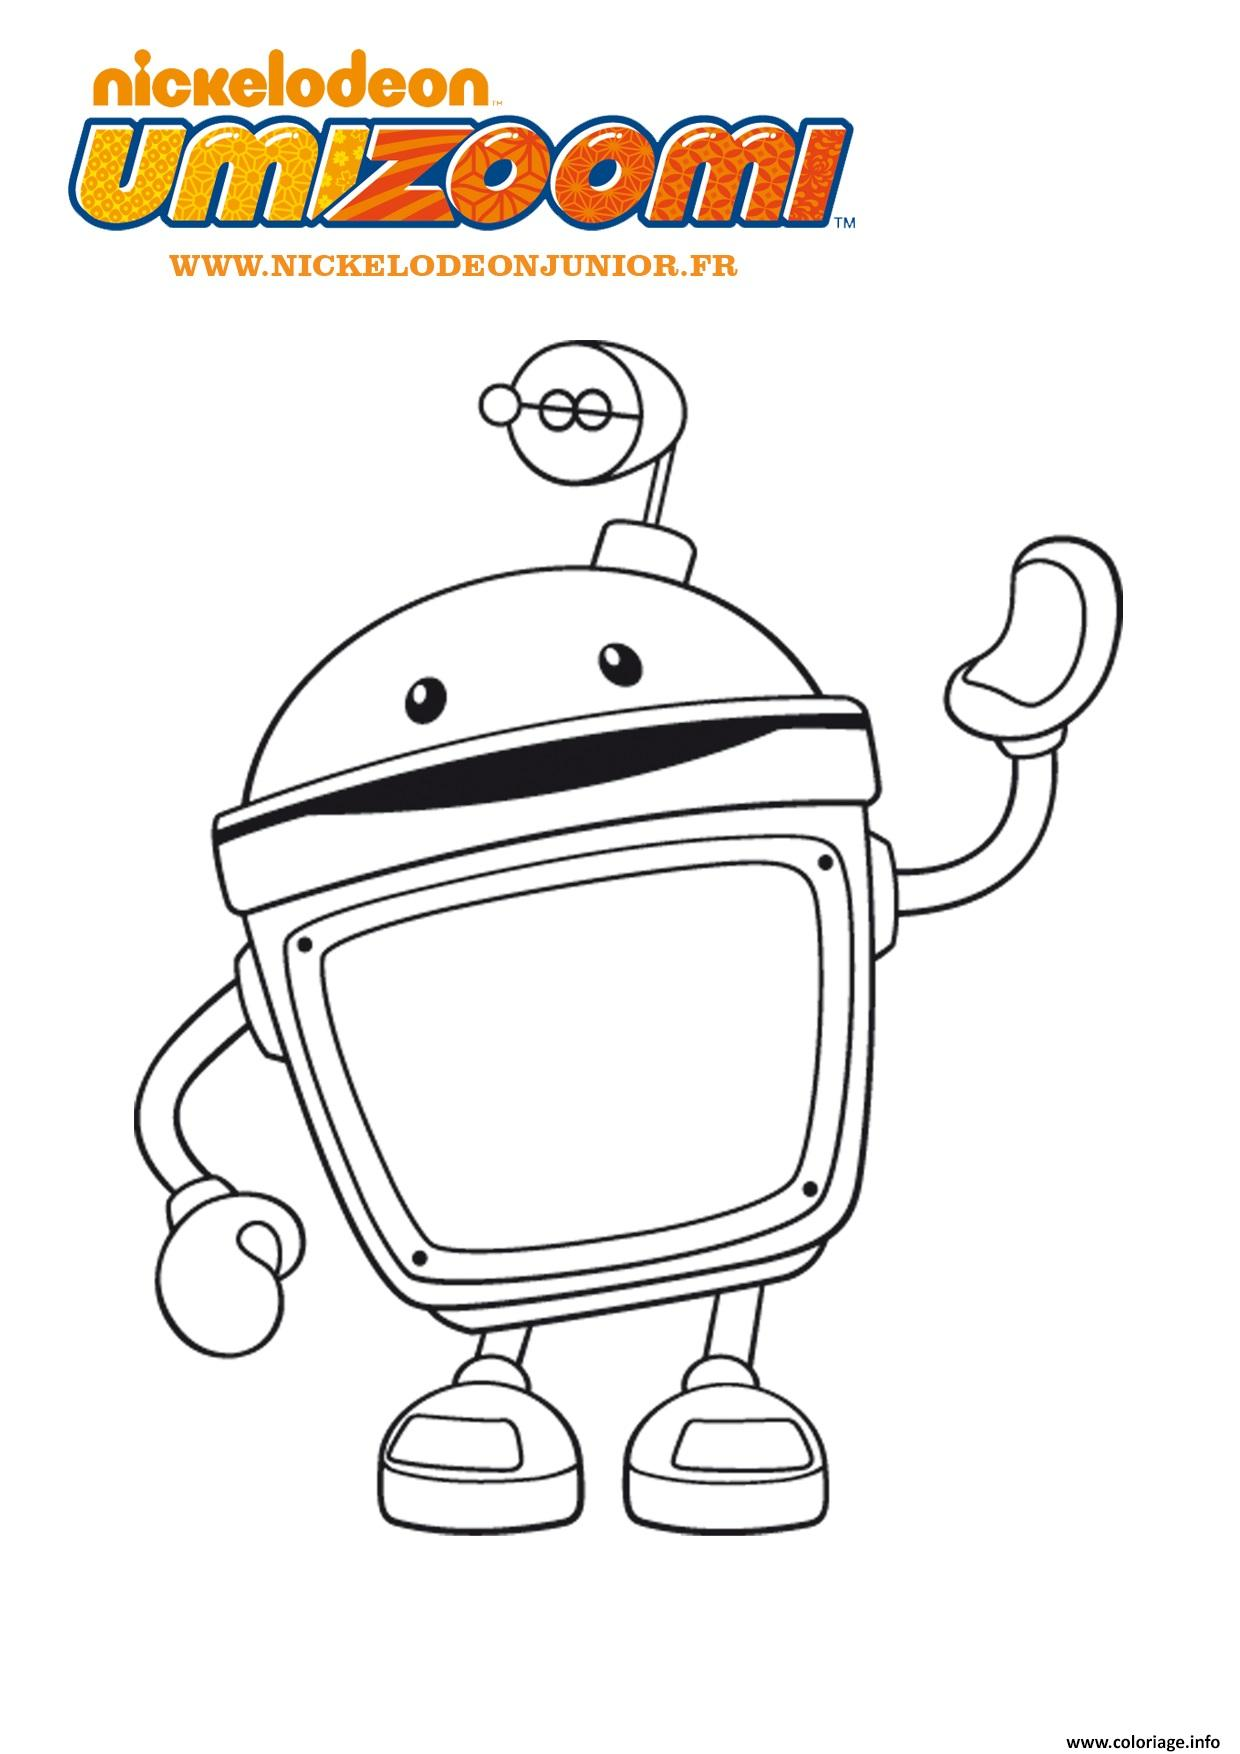 Coloriage umizoomi robot dessin - Robot coloriage ...